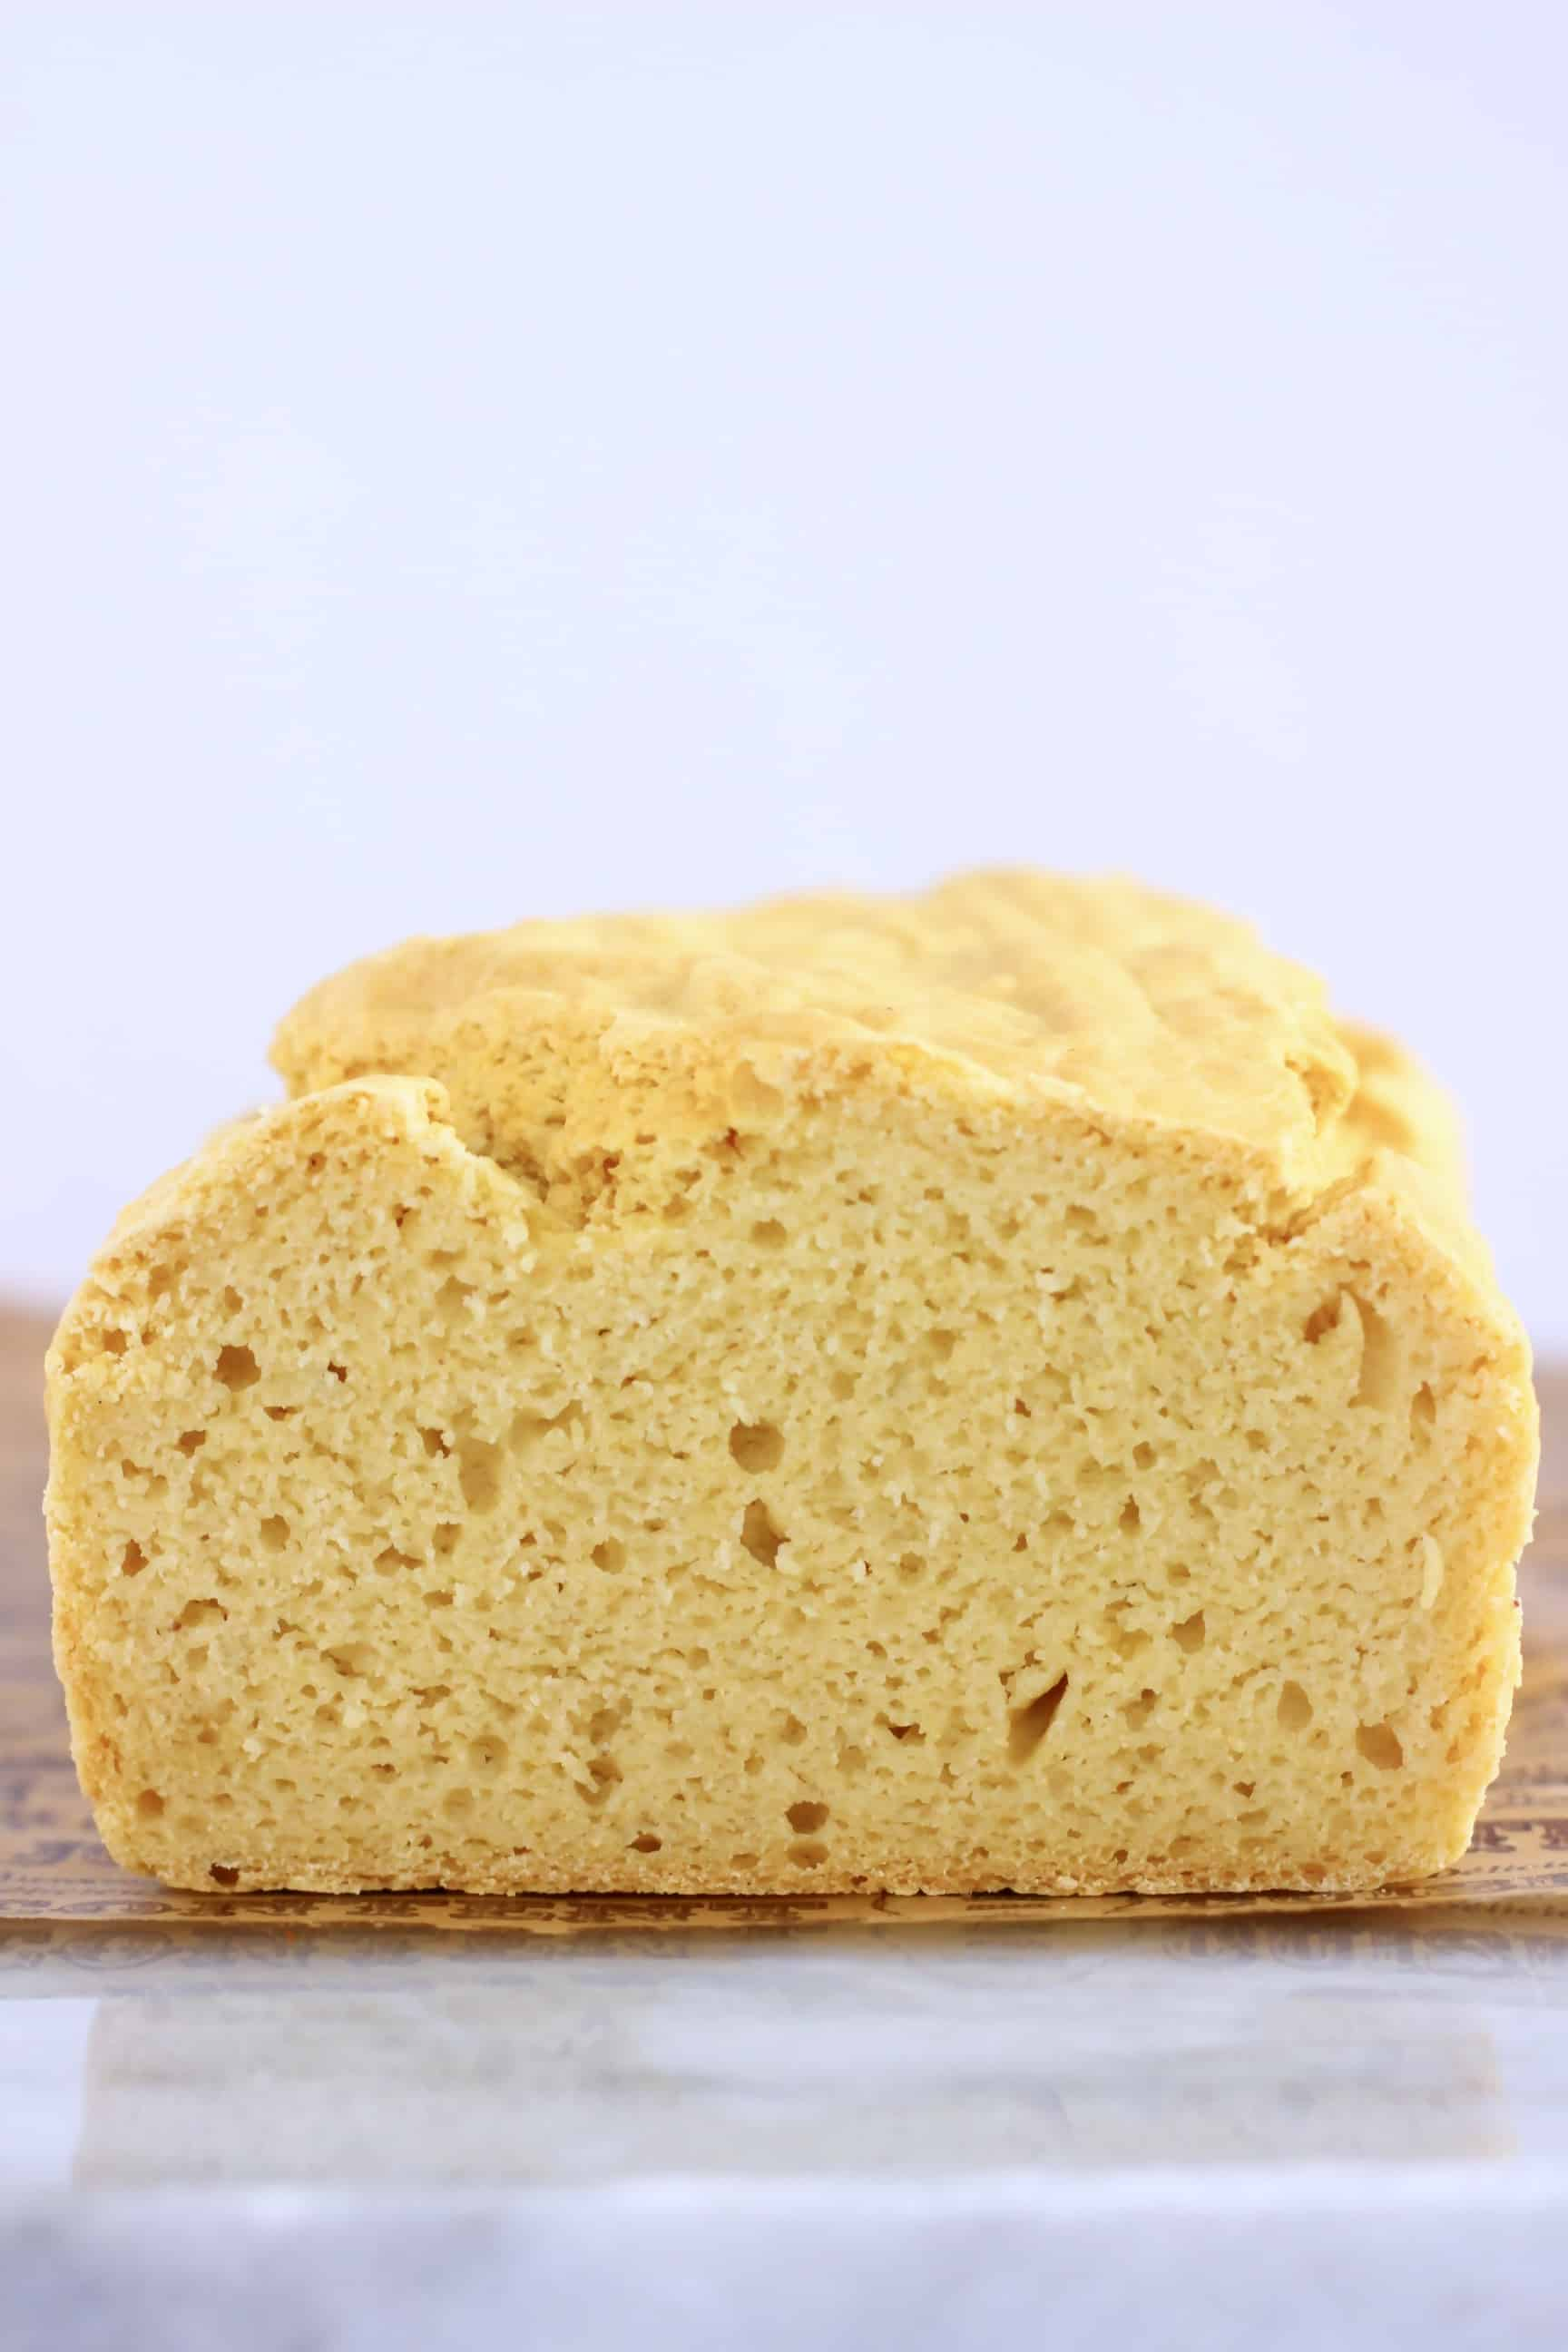 A cross-section of a loaf of gluten-free vegan bread on a marble slab